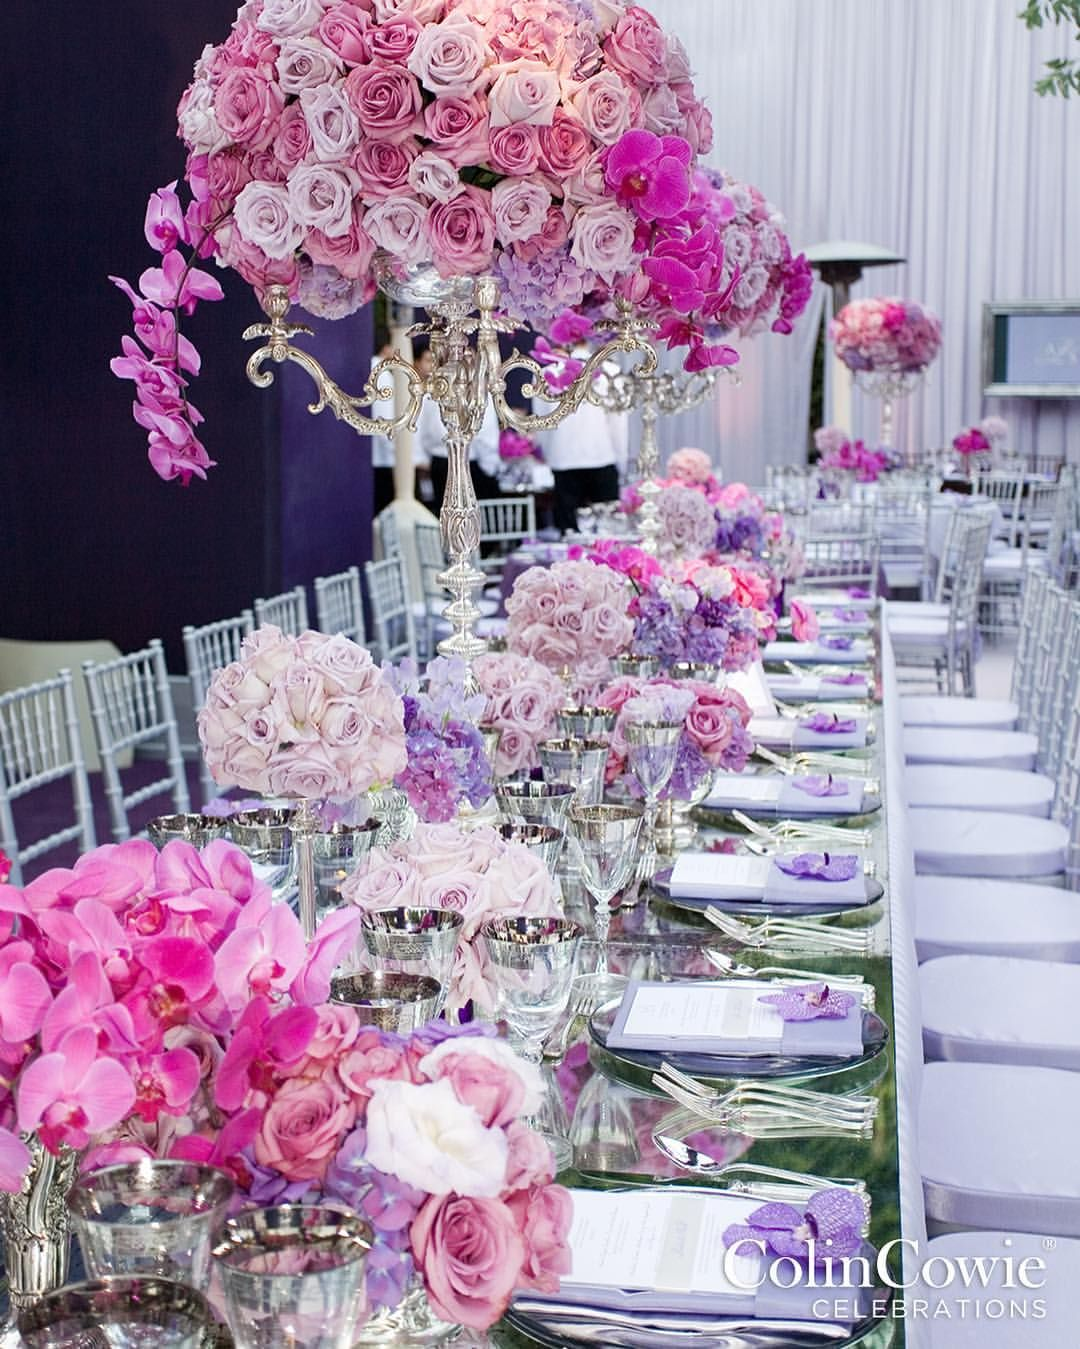 Pretty in pink and purple! How fab are these arrangements of roses, hydrangeas, and orchids?